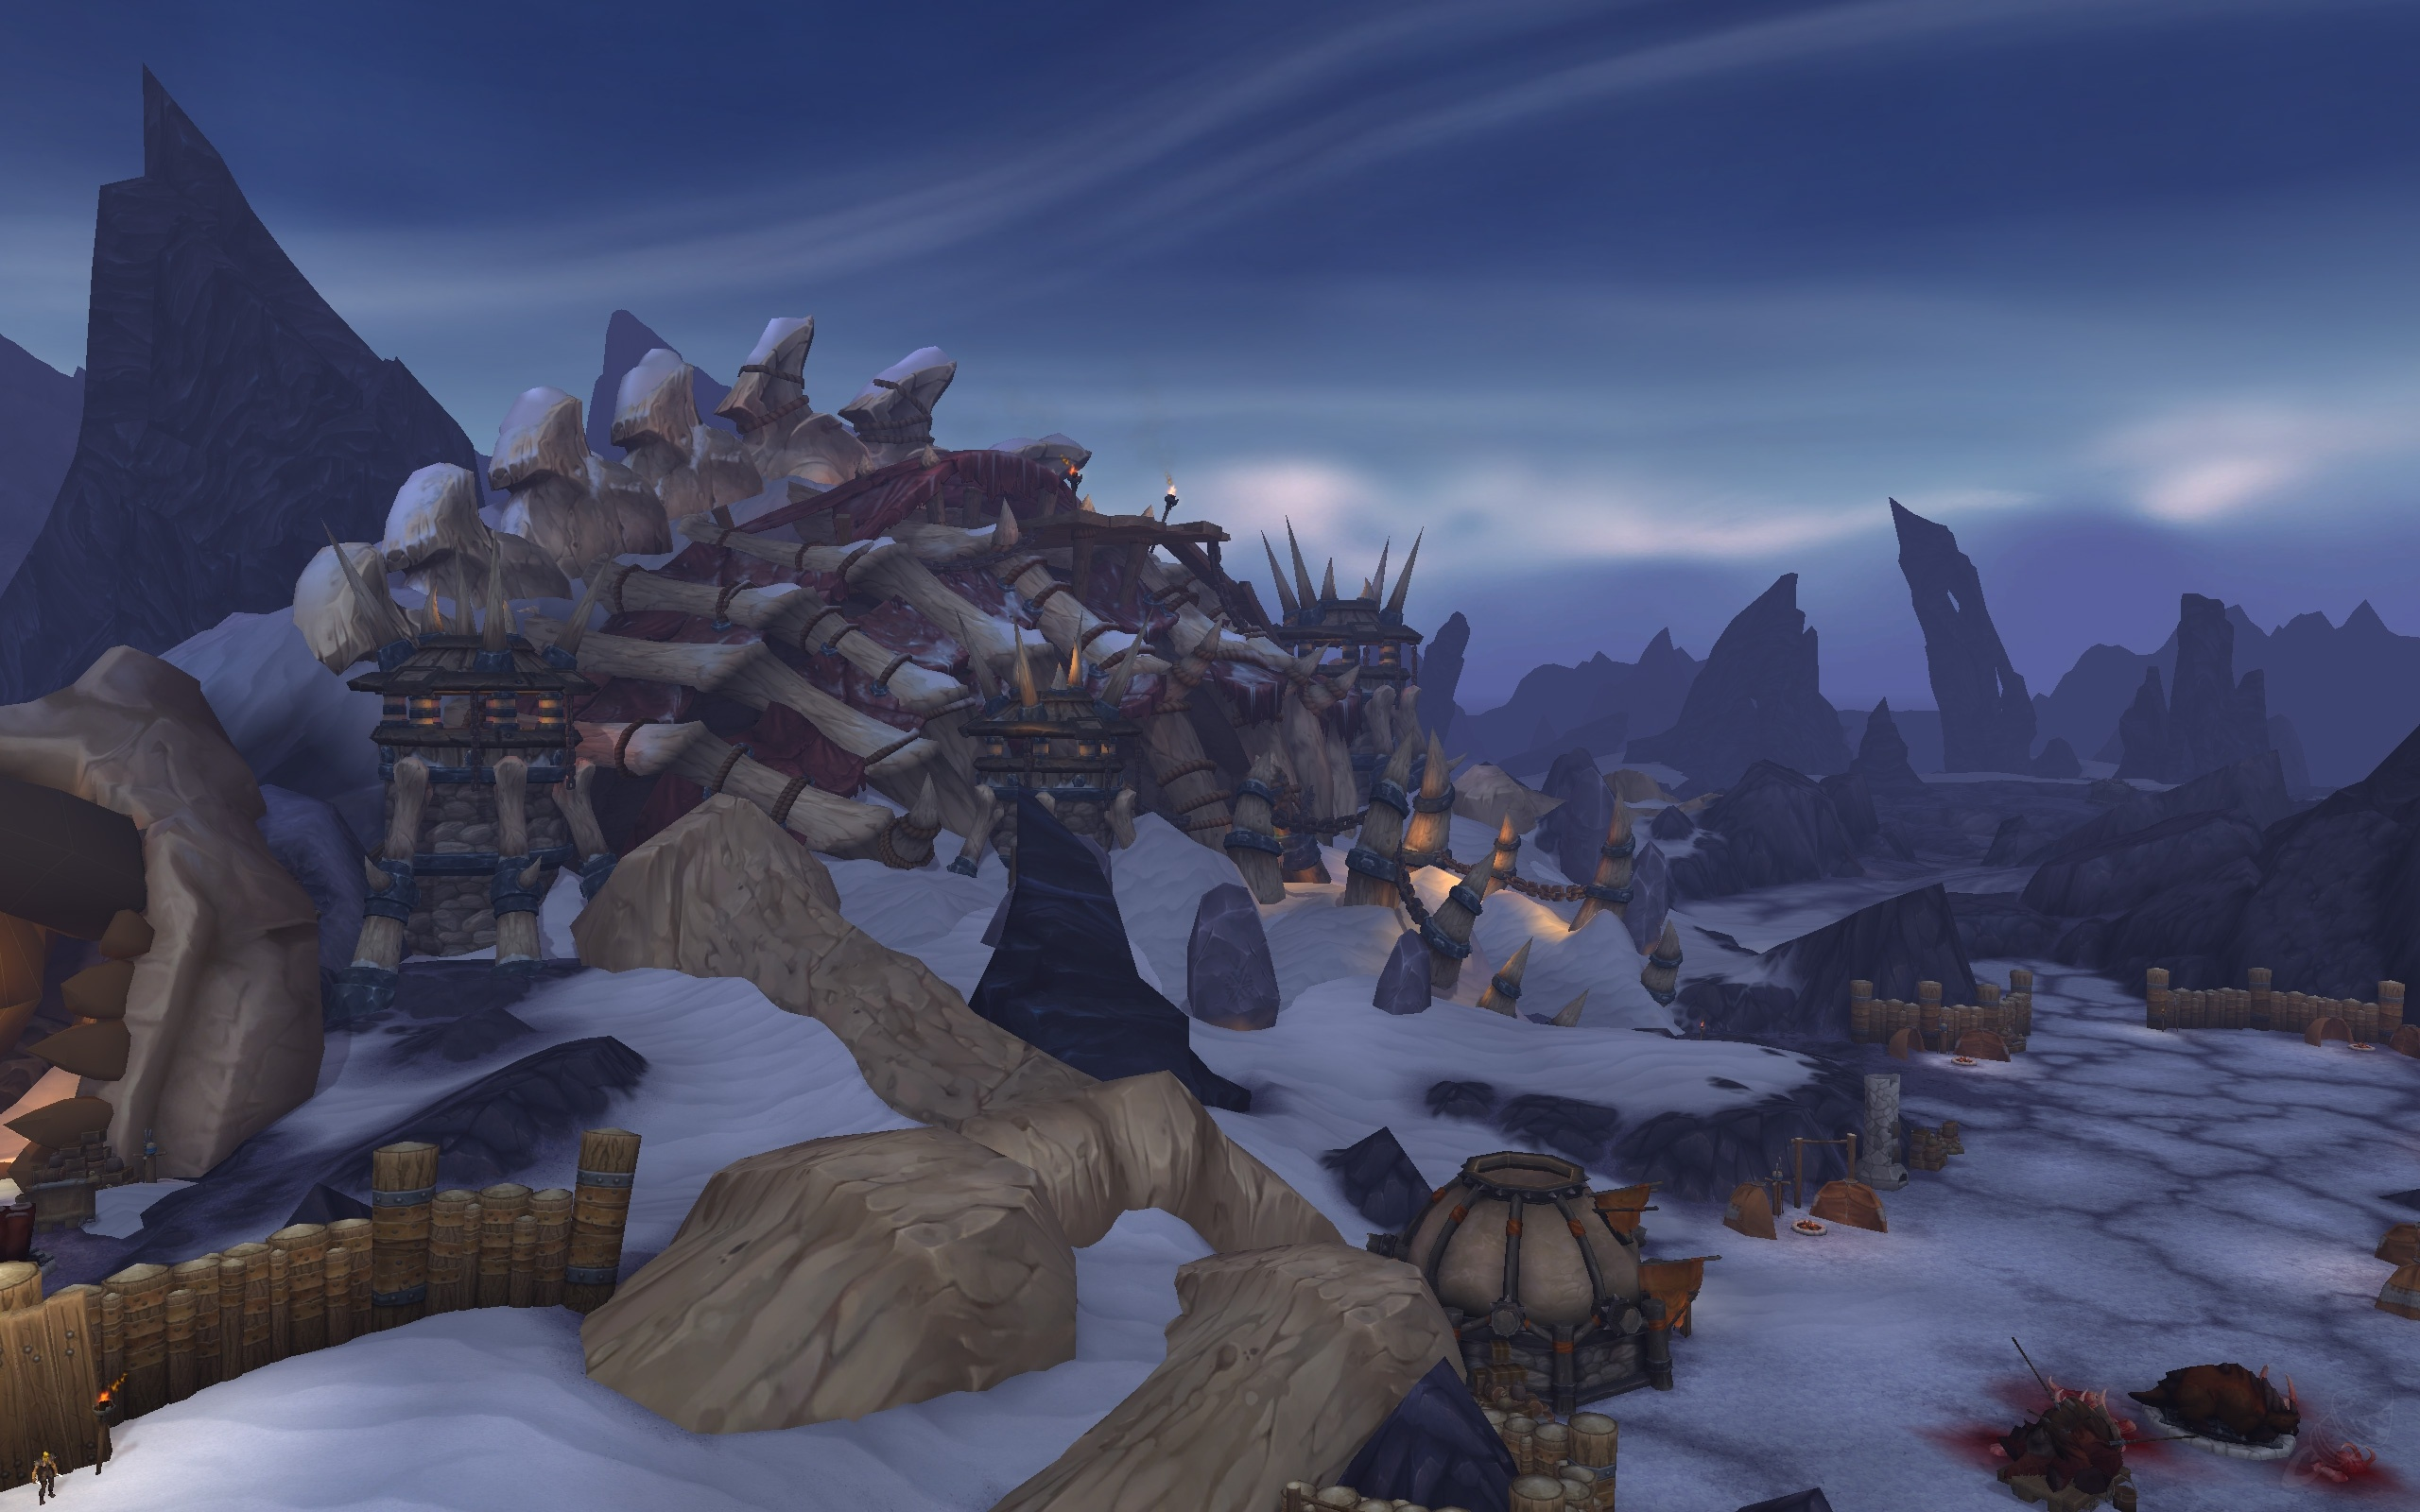 Absorbing Story Draenor From Warcraft Chronicles Volume Lore Collaborationwith Wowhead News Story Draenor From Warcraft Chronicles Volume Lore Continued Exposure Wow Bugged Wow Legion Continued Exposu dpreview Wow Continued Exposure